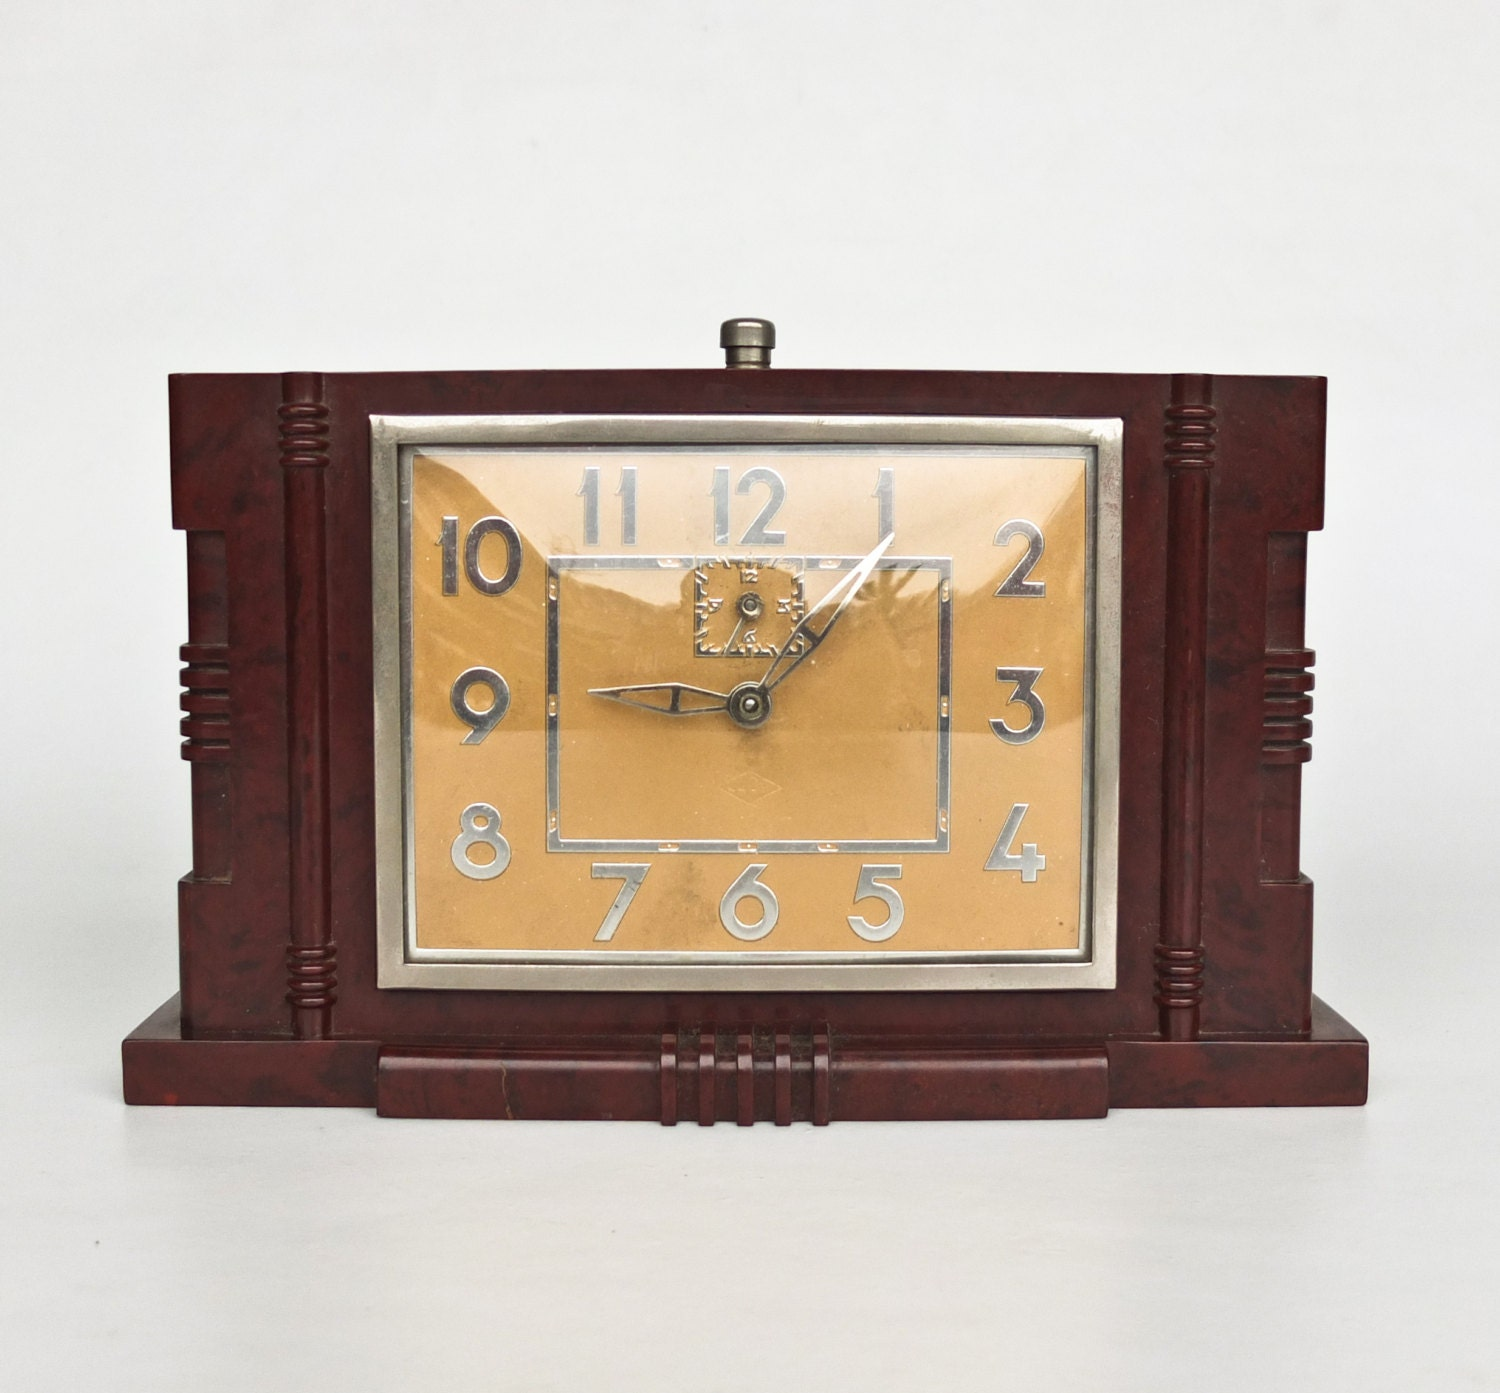 Art deco desk clock bakelite alarm clock table clock 30s Art deco alarm clocks